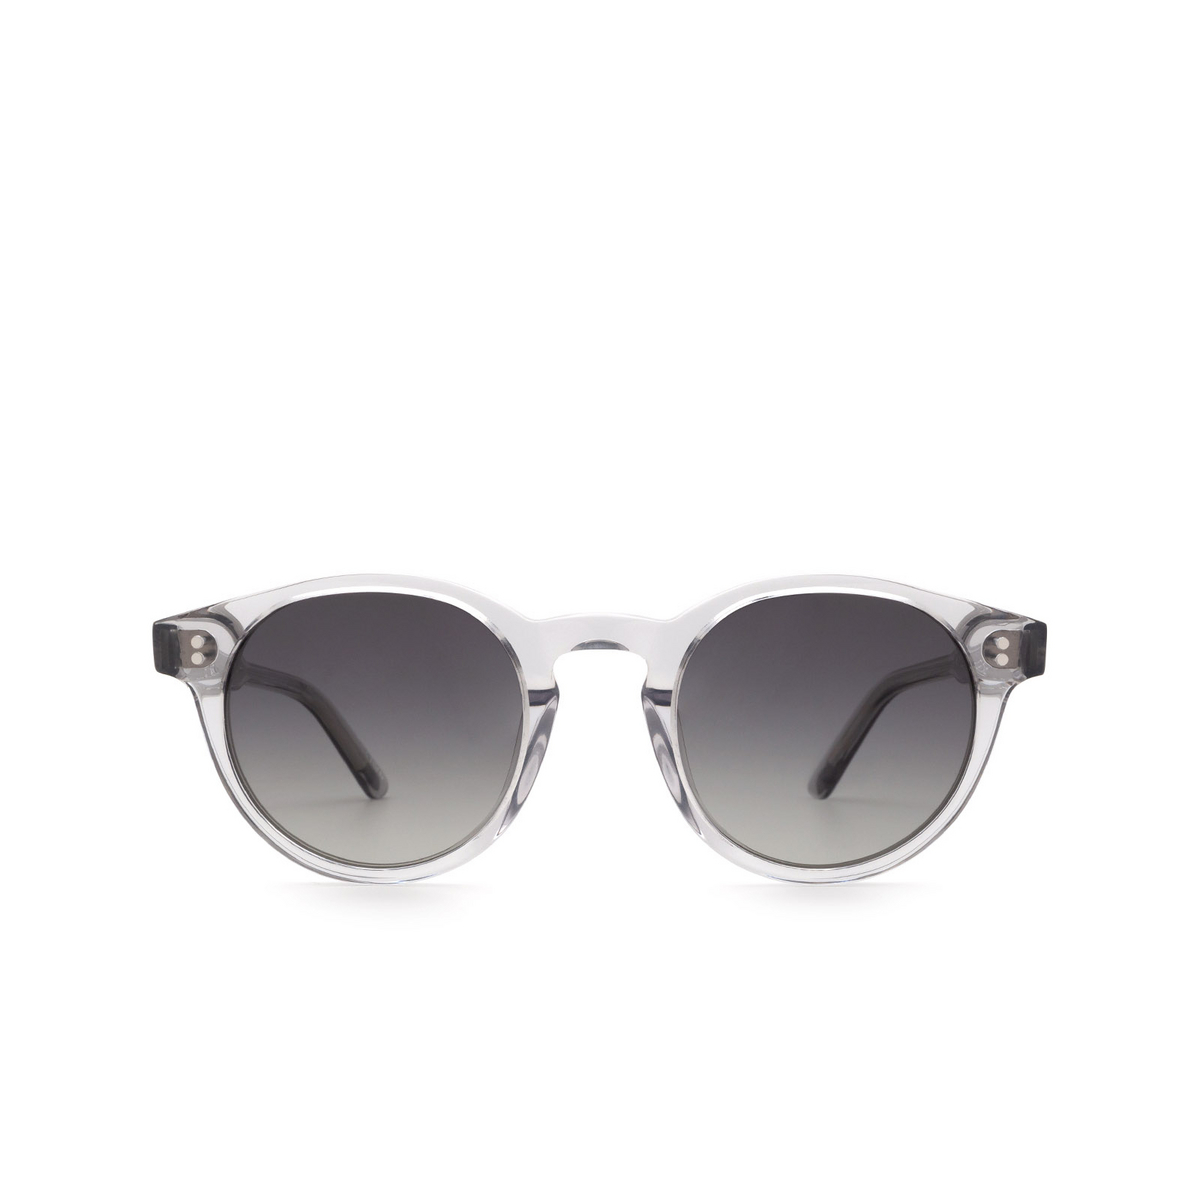 Chimi® Round Sunglasses: 03 color Grey - front view.